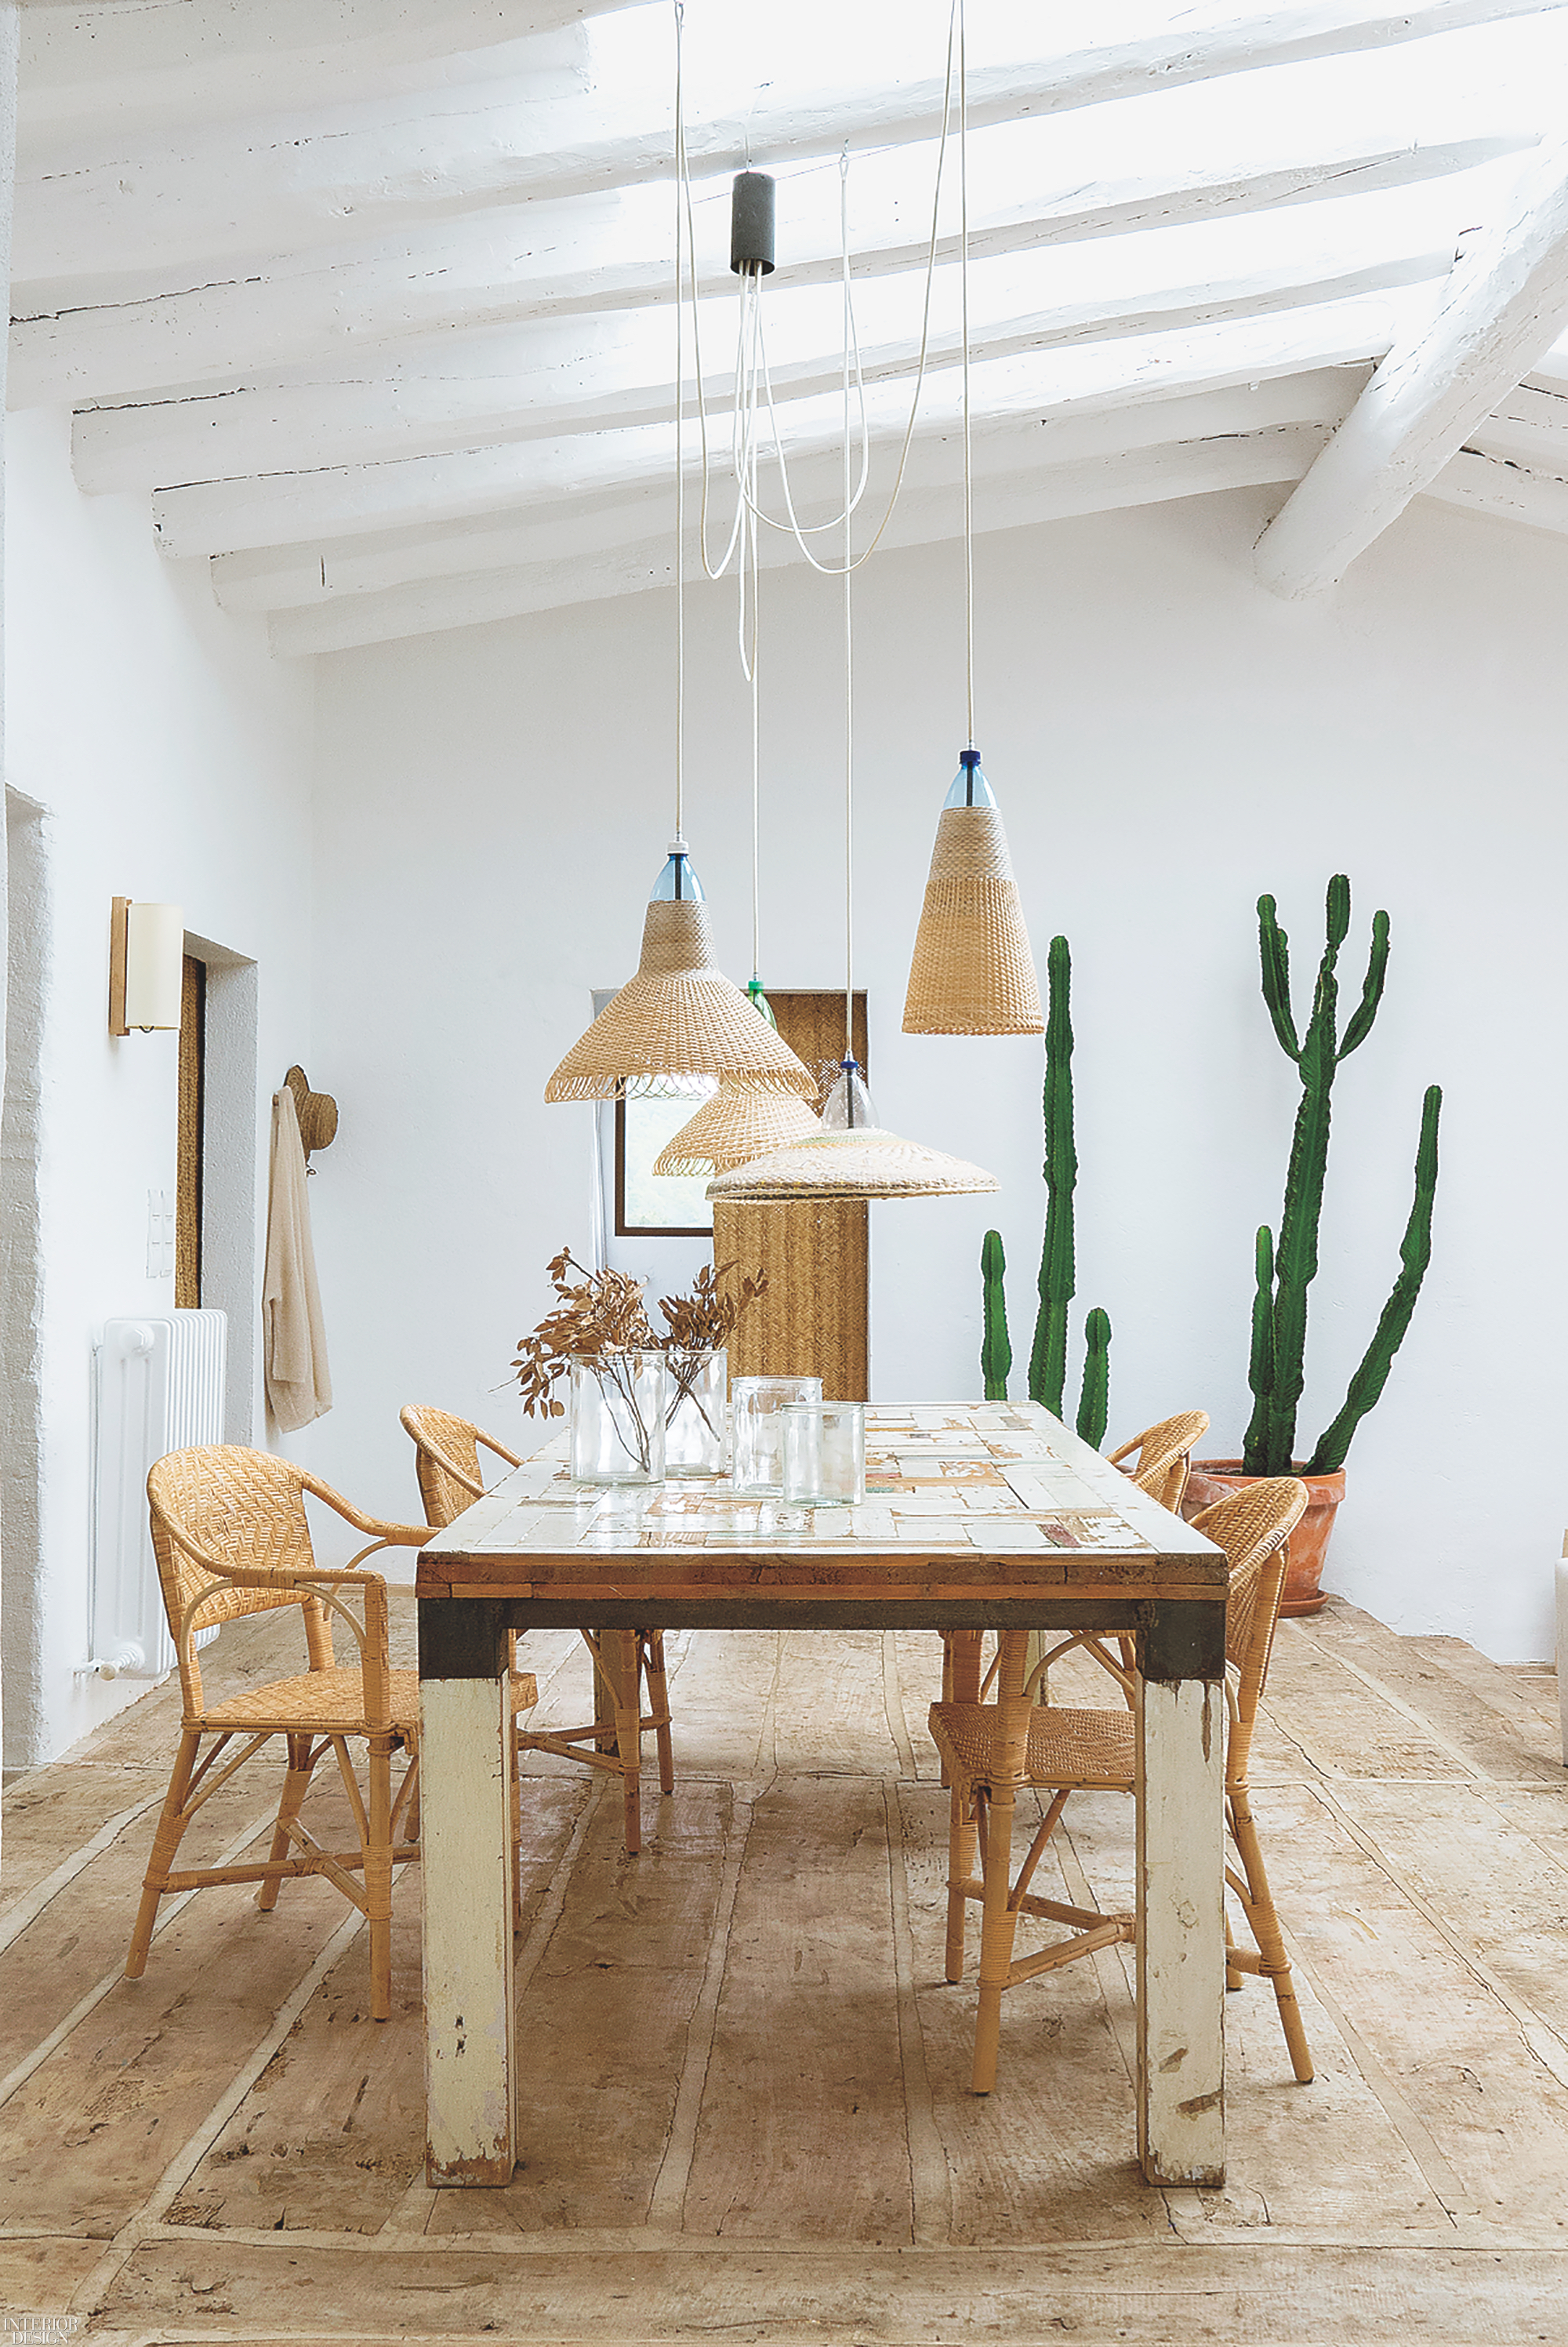 ... Into The Dining Area, Where PET Lamps By Álvaro Catalán De Ocón Dangle  Over Vintage Wicker Chairs (from A Local Maker) And A Salvaged Wood Table  By Piet ...